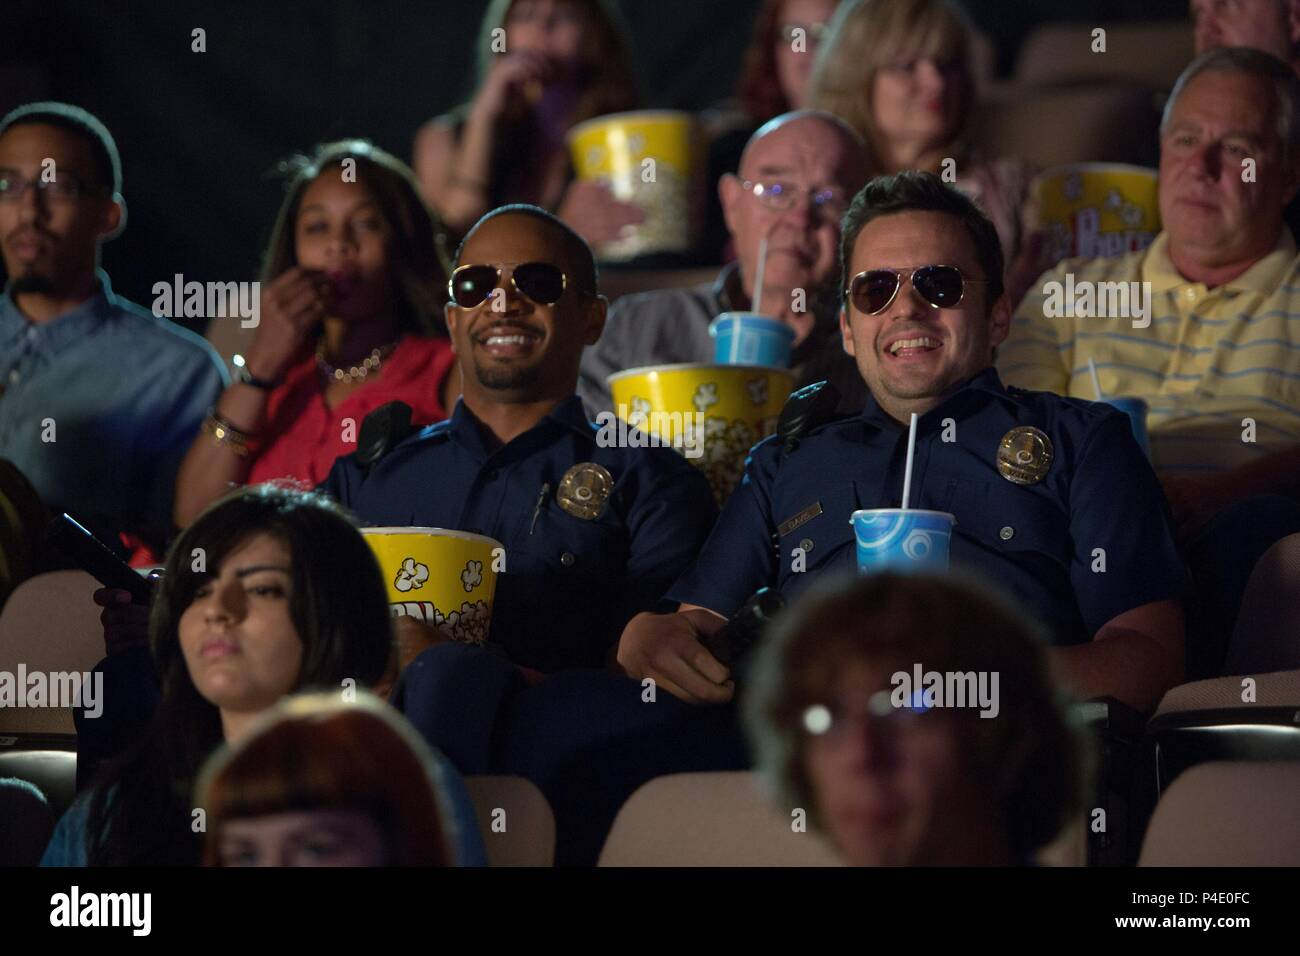 Original Film Title: LET'S BE COPS.  English Title: LET'S BE COPS.  Film Director: LUKE GREENFIELD.  Year: 2014.  Stars: DAMON WAYANS; JAKE JOHNSON. Credit: GENRE FILMS/TWENTIETH CENTURY FOX FILM CORPORATION/WIDEAWAKE / Album - Stock Image